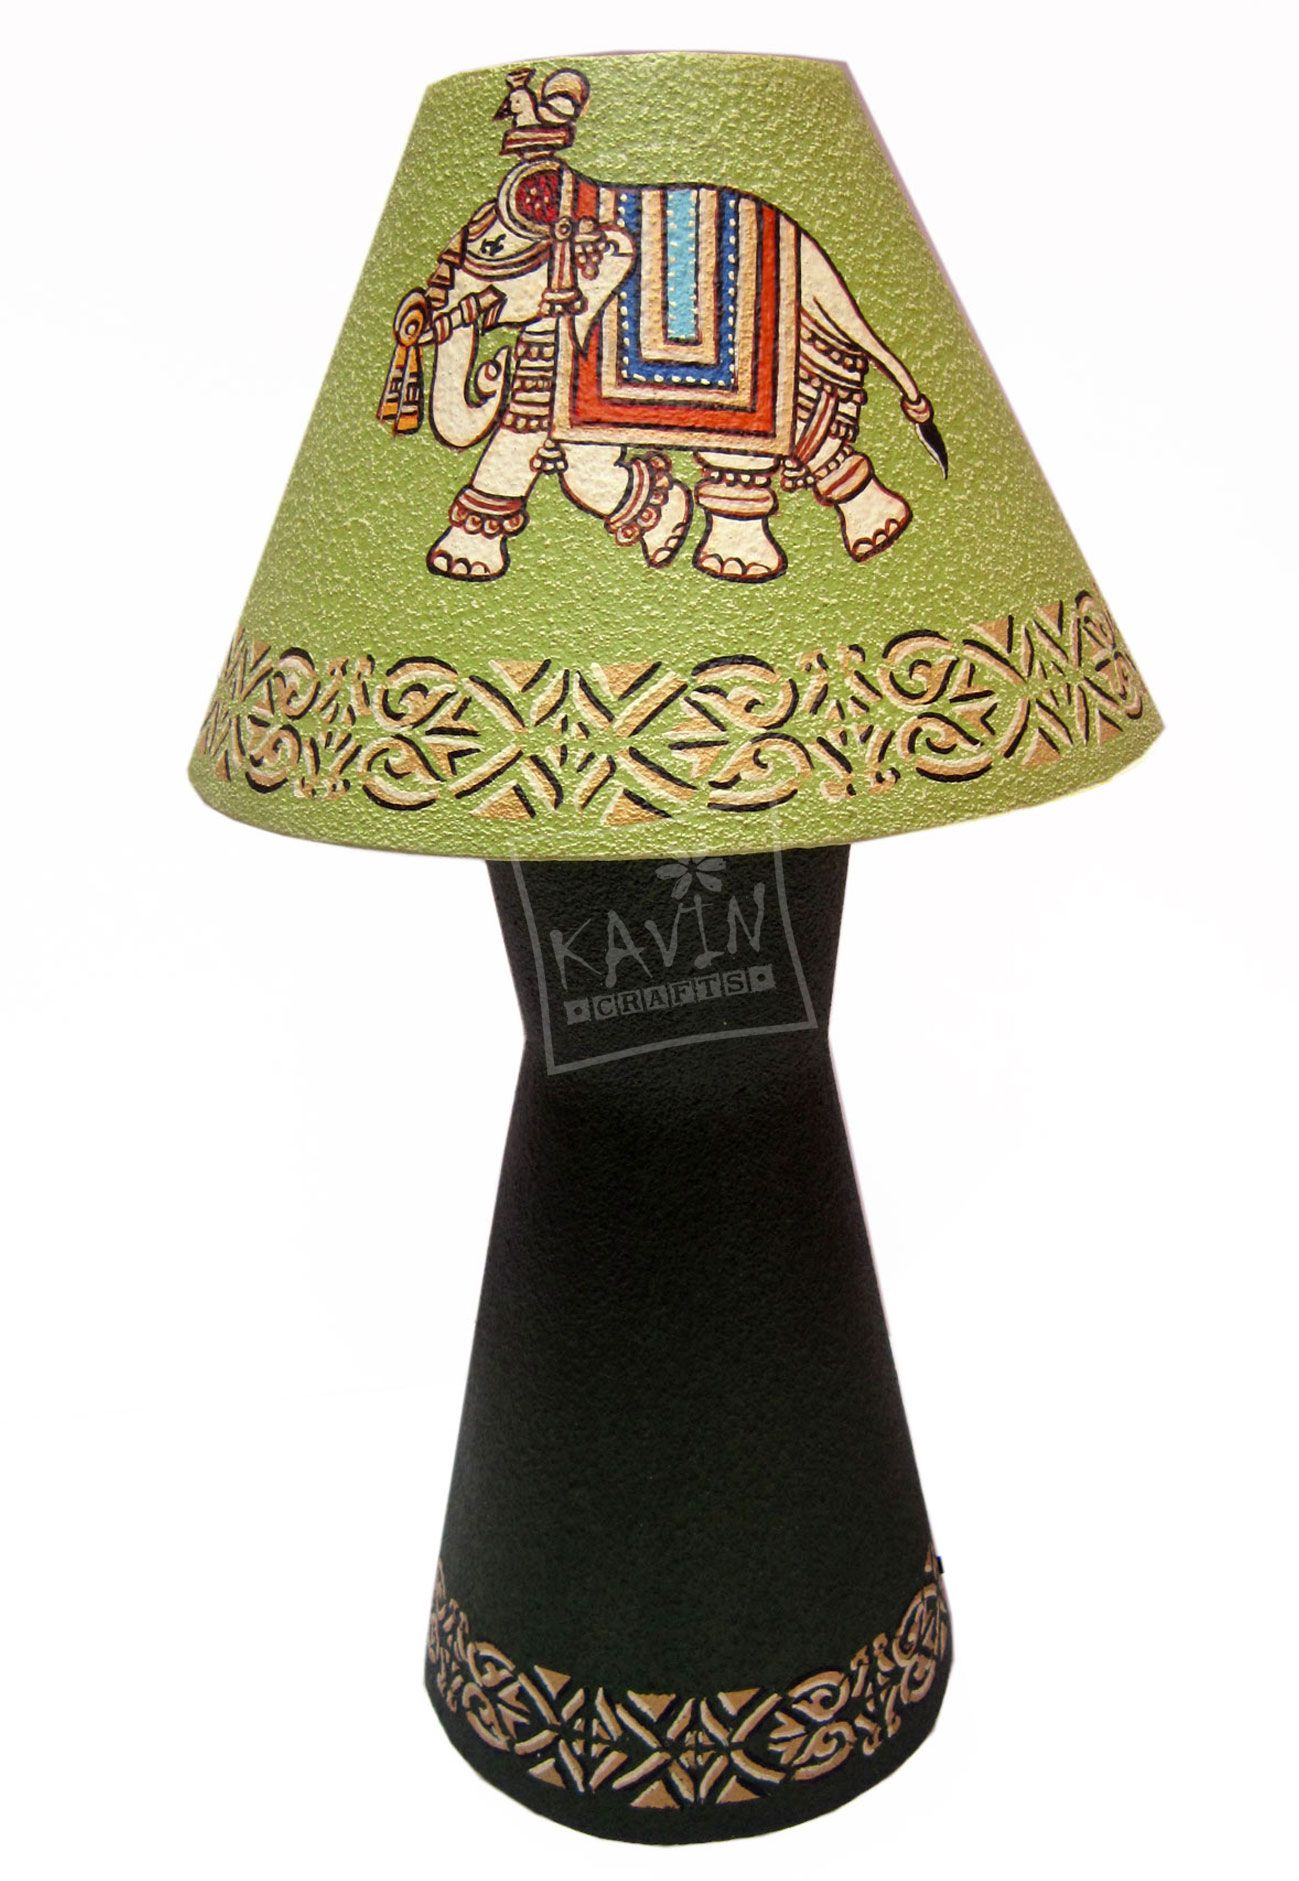 Wall night lamp online india - Decorative Lamps Lights Shopping Online From Largest Home Decor Store Craft Shops India Here You Get Night Lamps Wall Lights With Decorative Design At